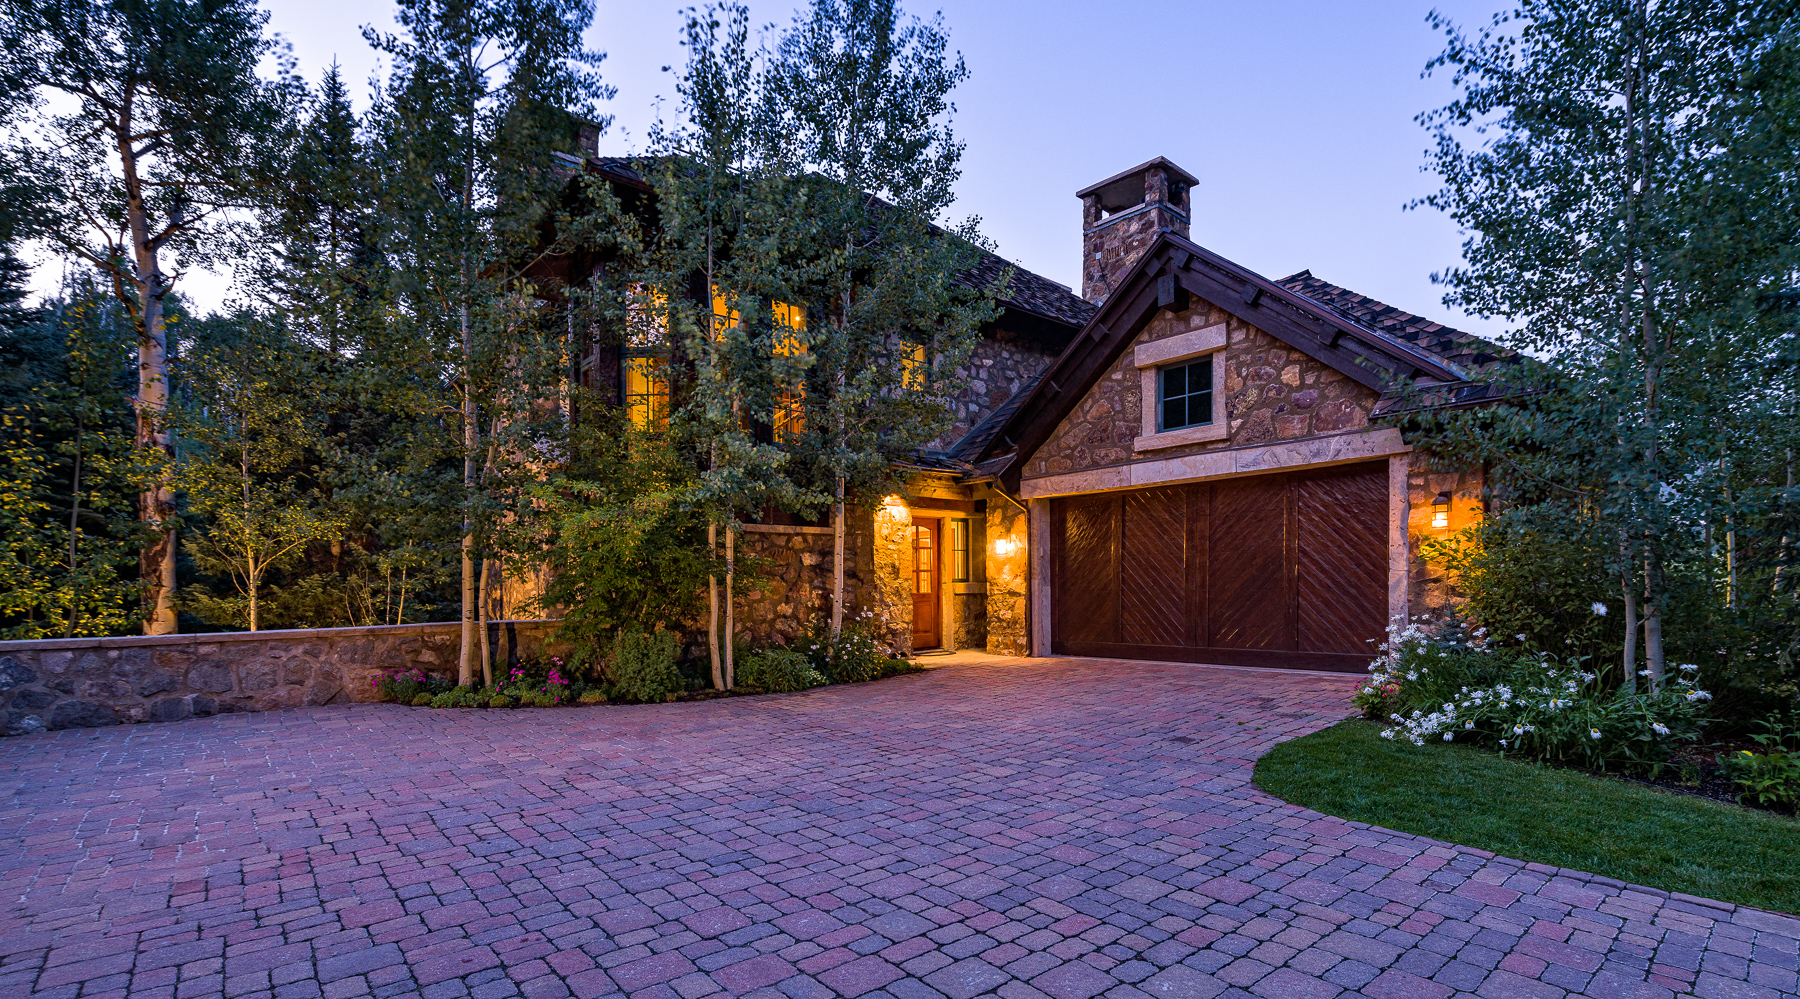 複式單位 為 出售 在 Rare Creekside Village Walk Home 55 Village Walk Beaver Creek, 科羅拉多州, 81620 美國